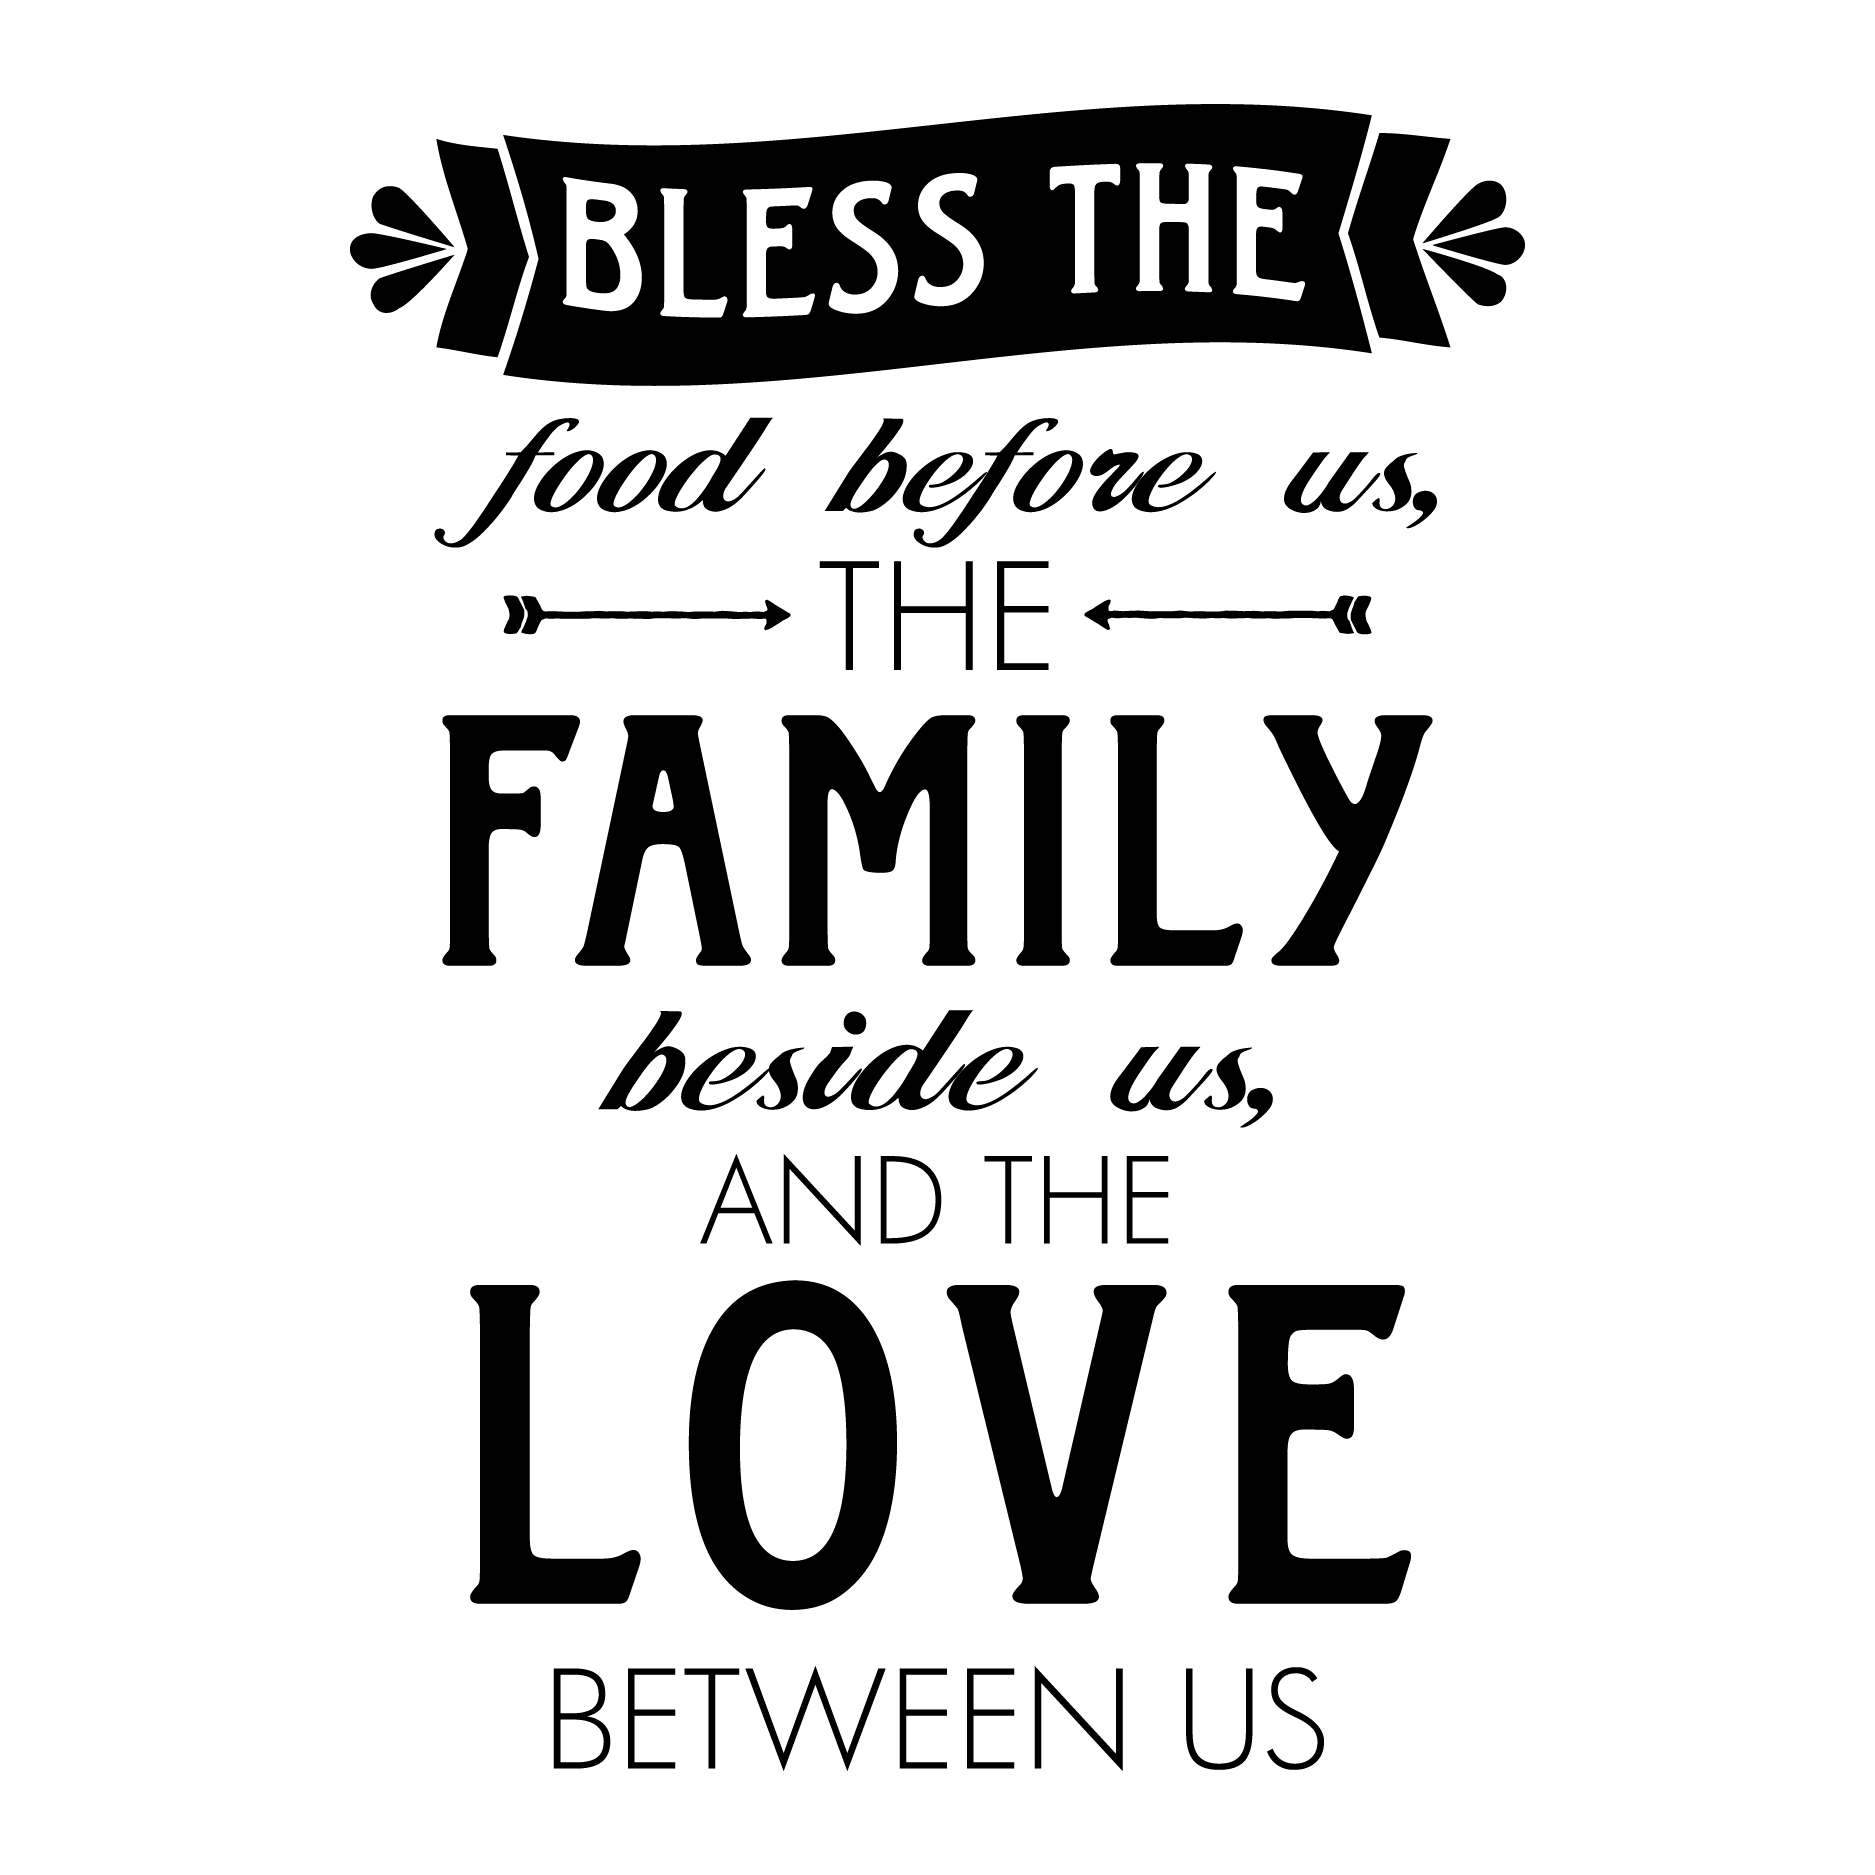 Free Kitchen Design Quotes Whimsy Bless Food Family Love Wall Quotes Decal